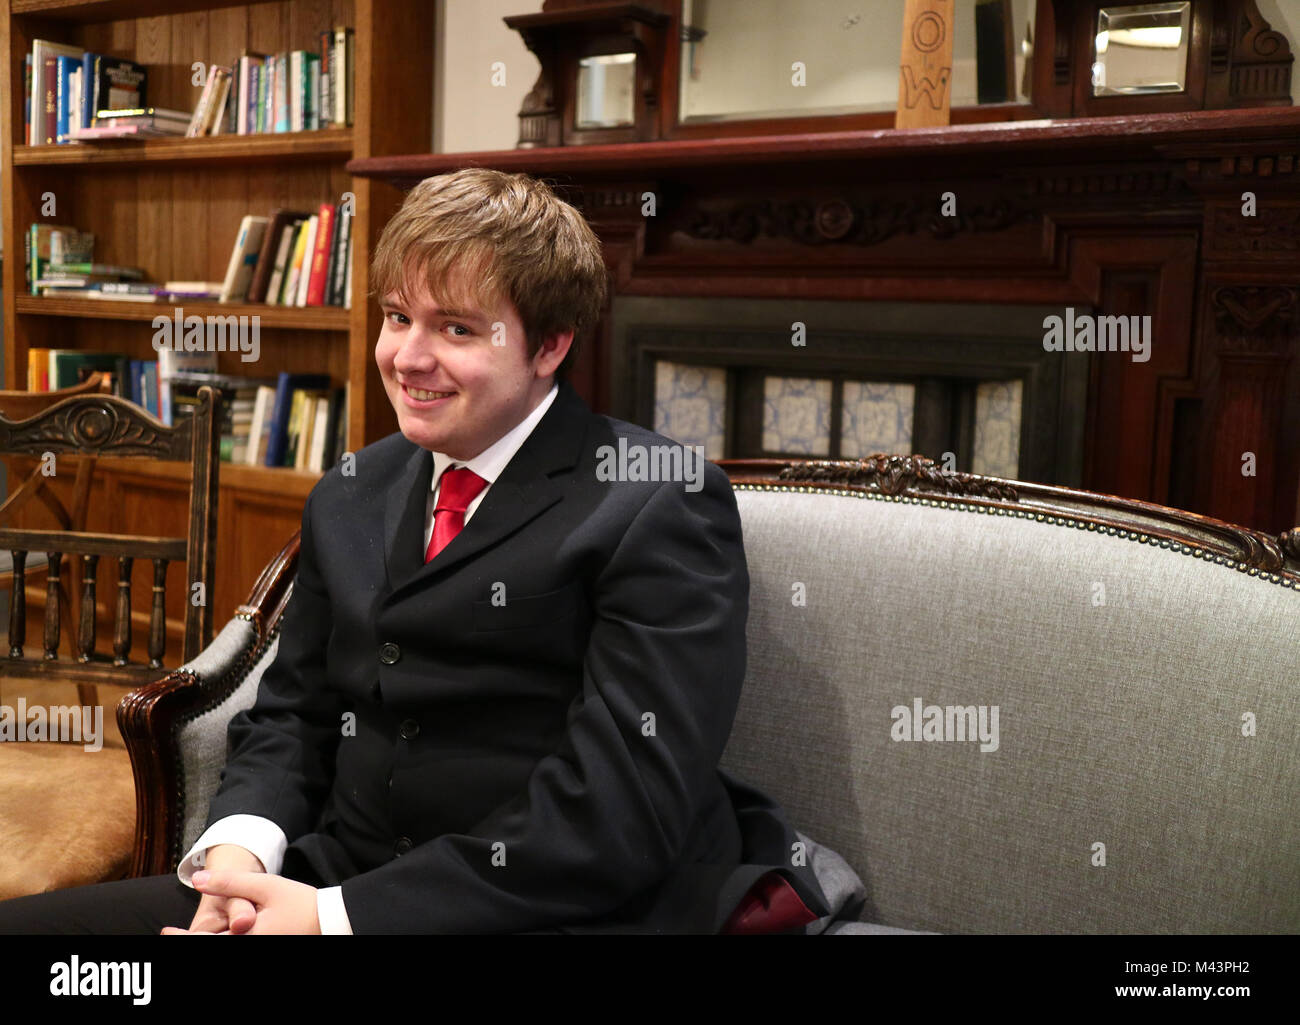 A young man smiling in a suit sat on a sofa taken from the side - Stock Image